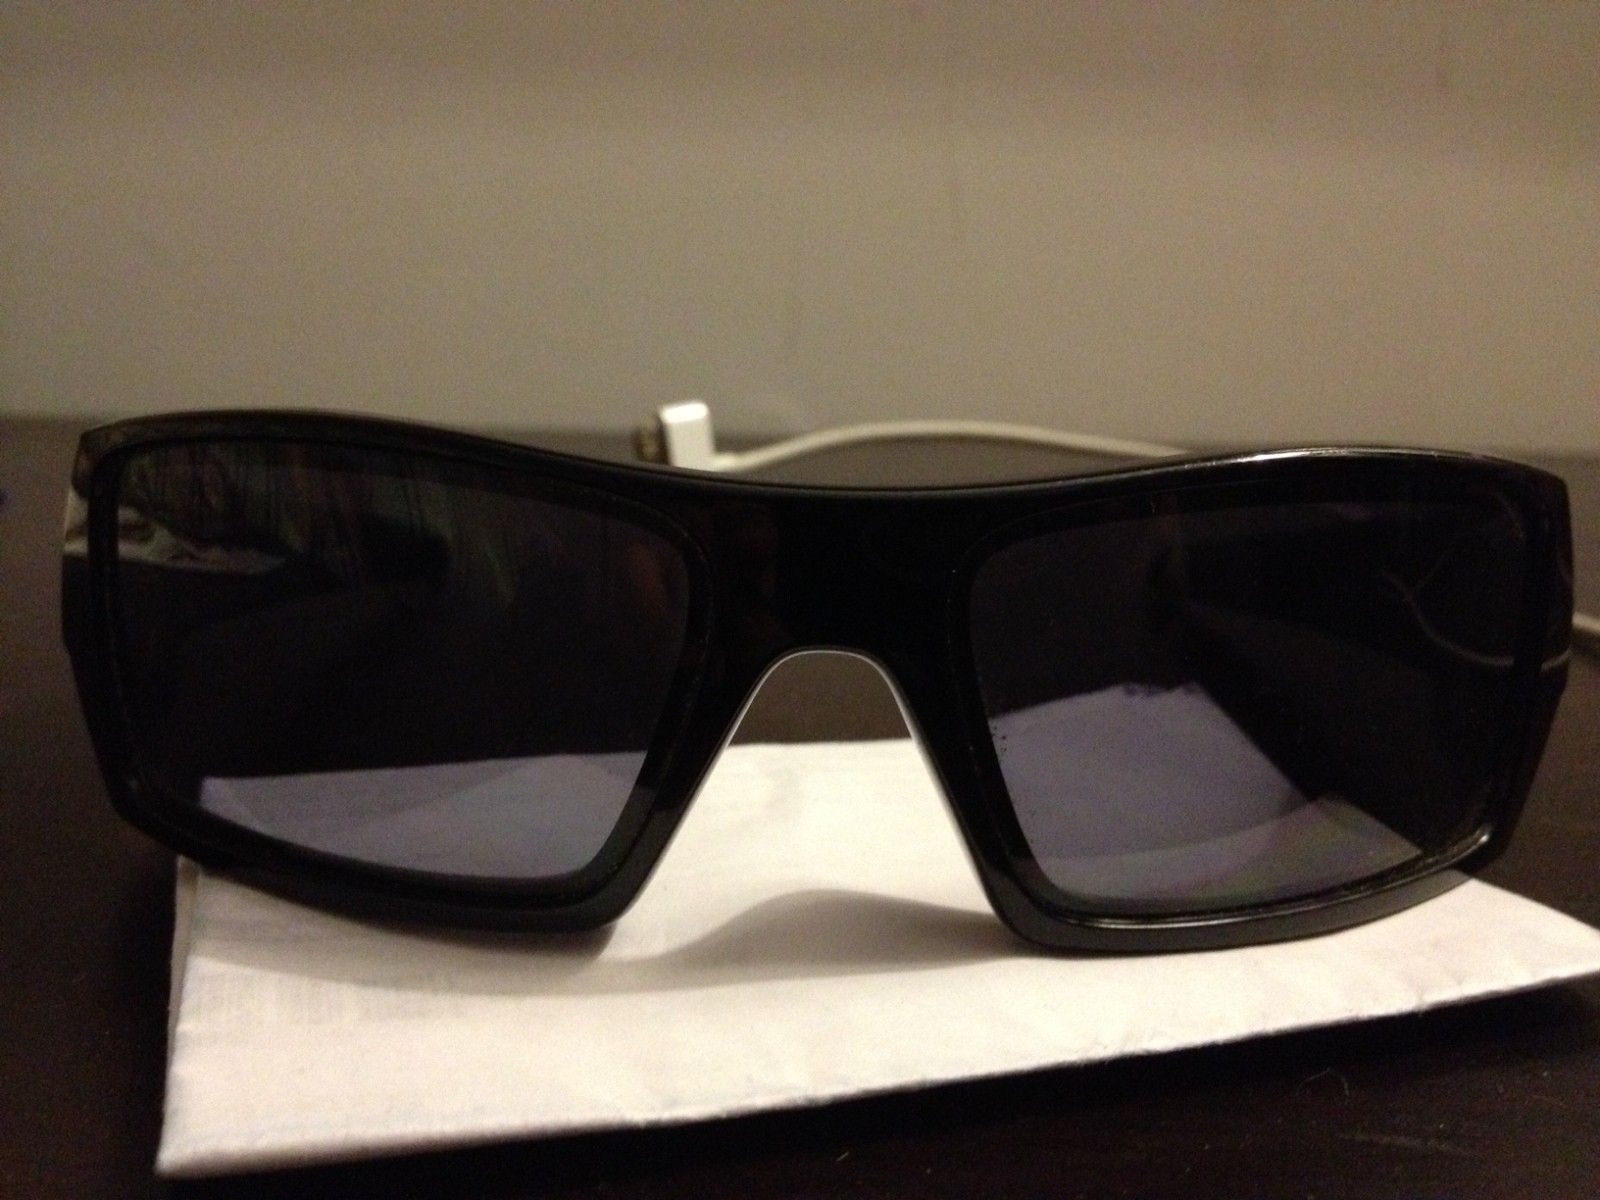 Sale Or Trade - Like NEW Eyepatch And Gascan - e9j2ht.jpg